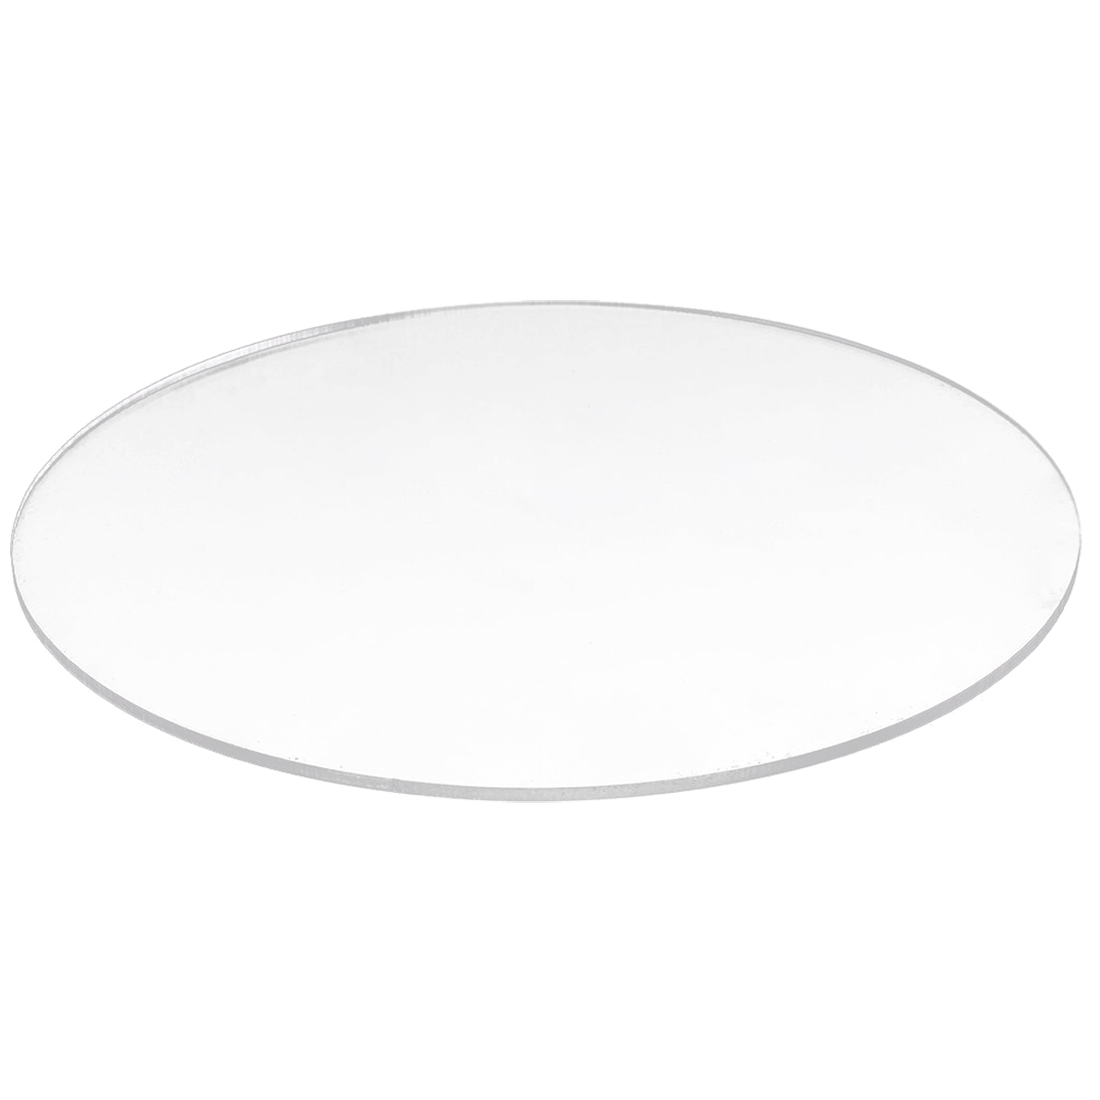 HLZS-Transparent  3mm Thick Mirror Acrylic Round Disc